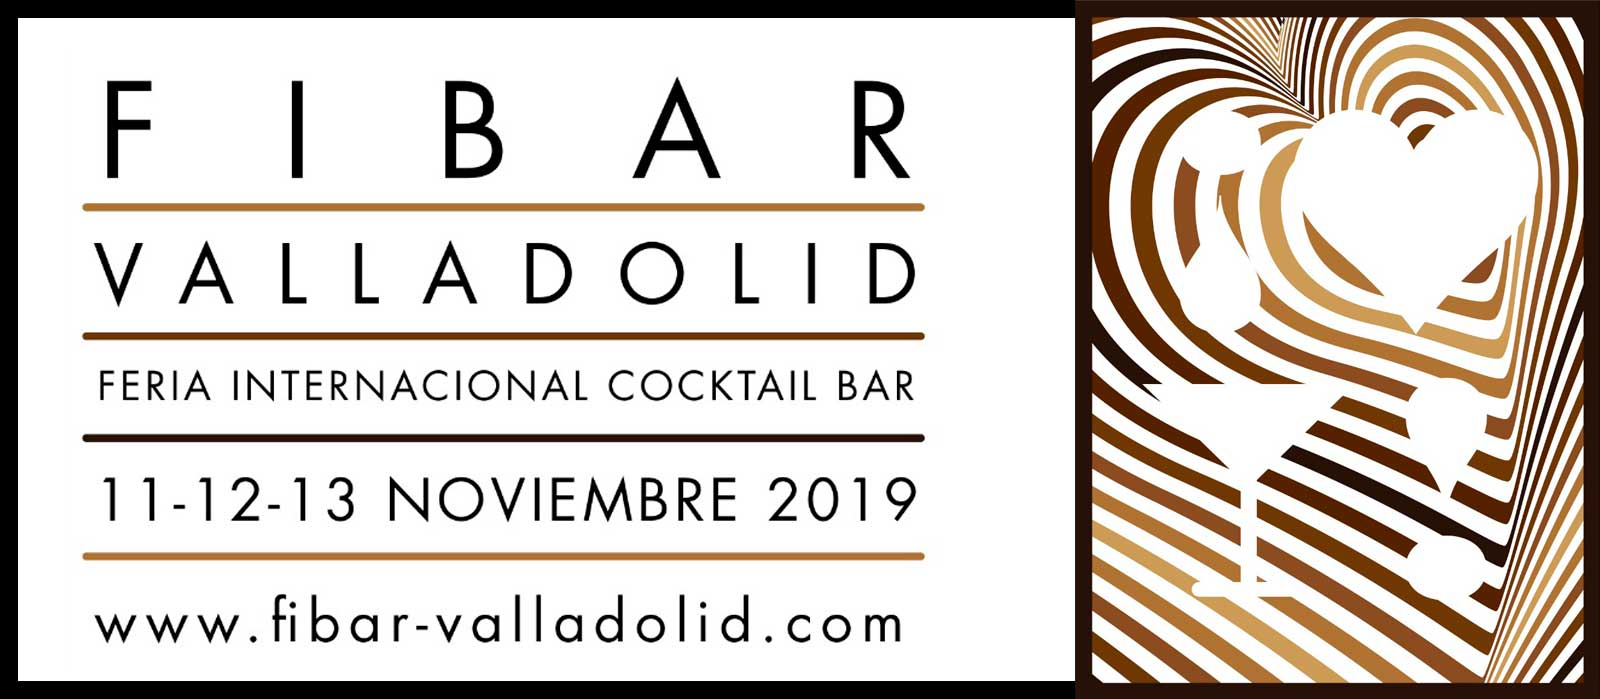 FIBAR Valladolid Feria Internacional Cocktail Bar